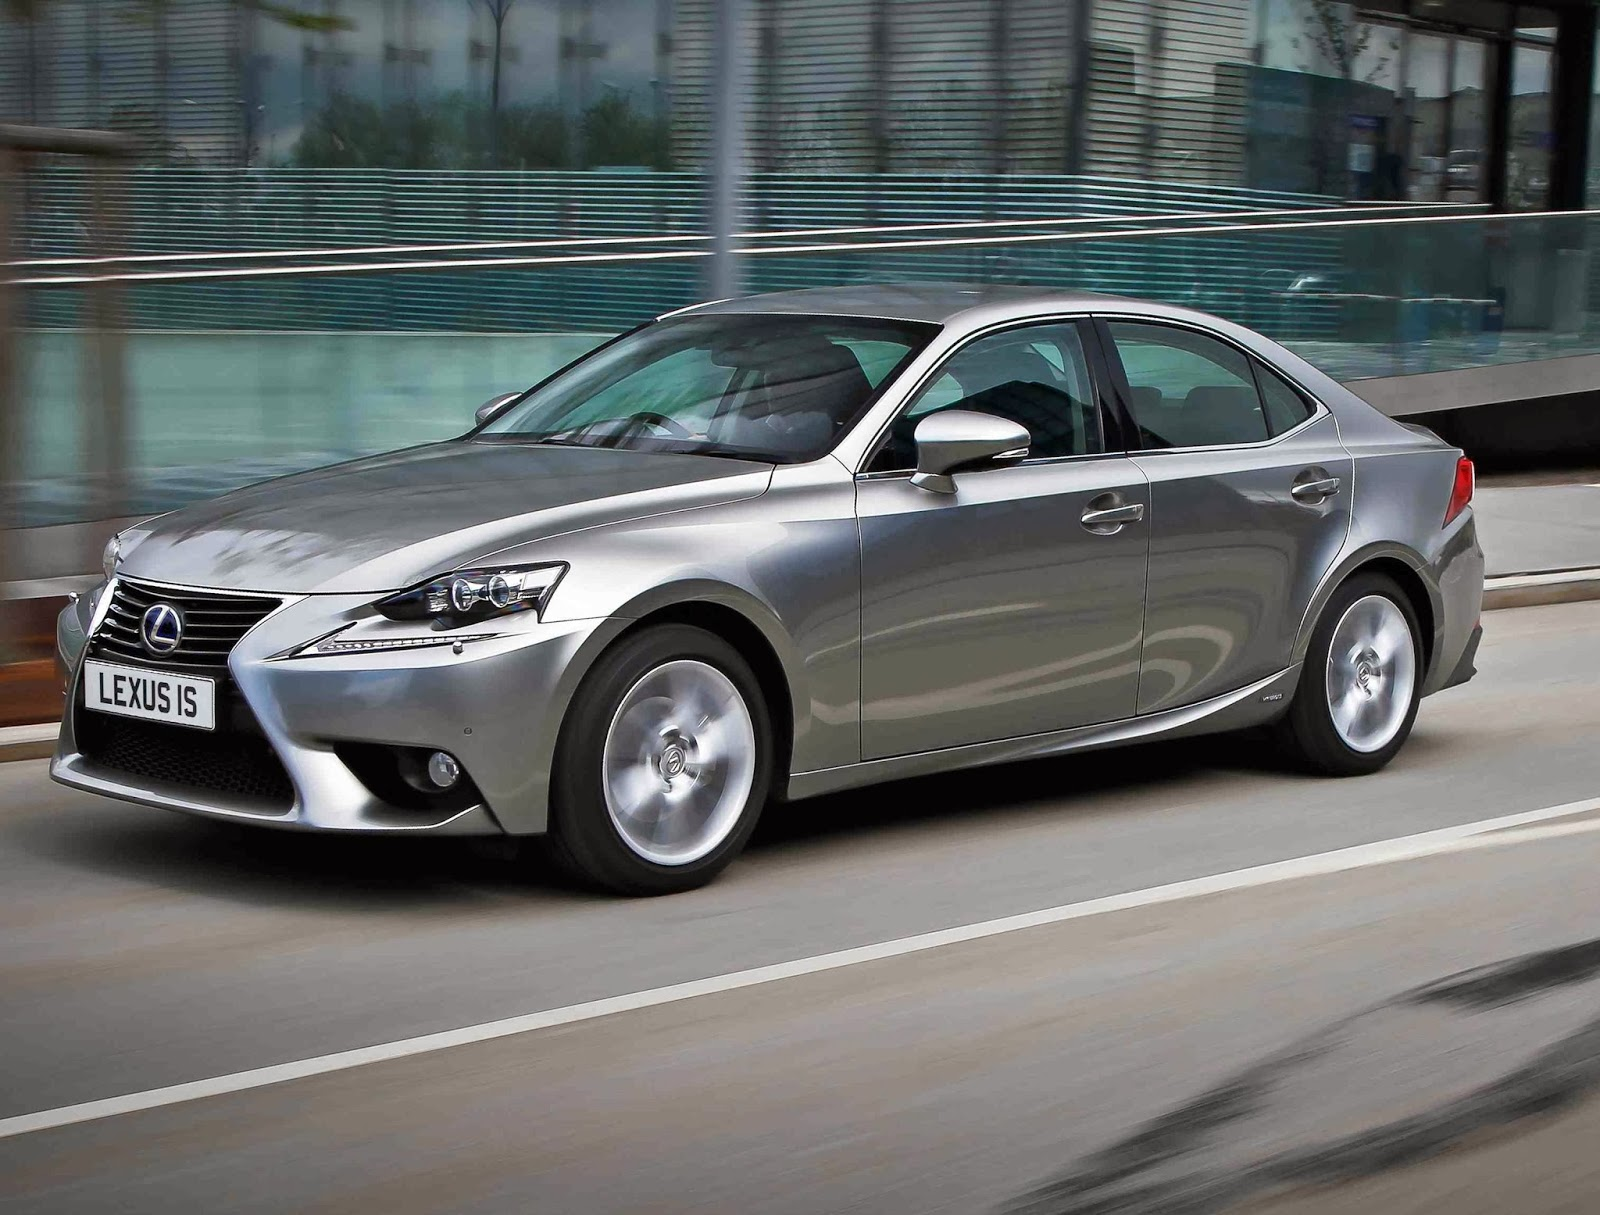 irish car travel magazine road test lexus is 300h. Black Bedroom Furniture Sets. Home Design Ideas